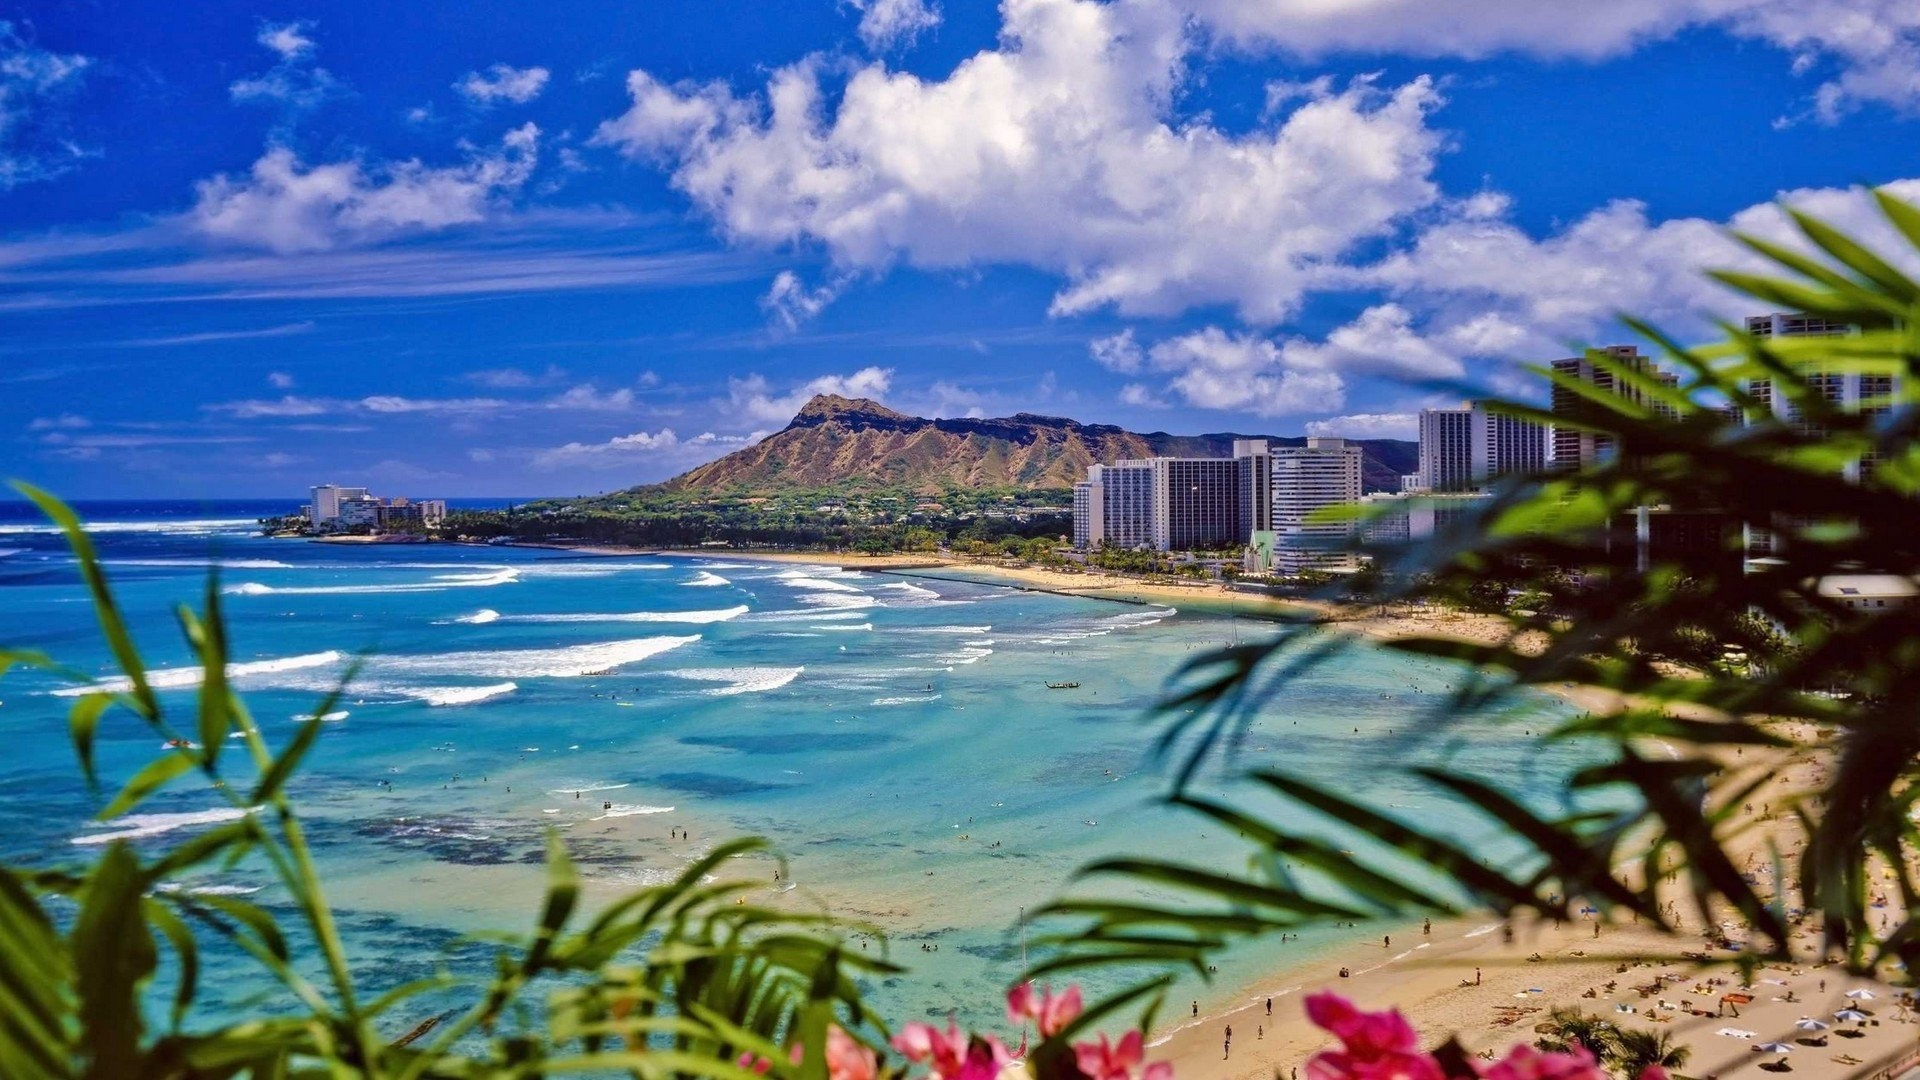 61 Waikiki Beach Wallpapers on WallpaperPlay 1920x1080